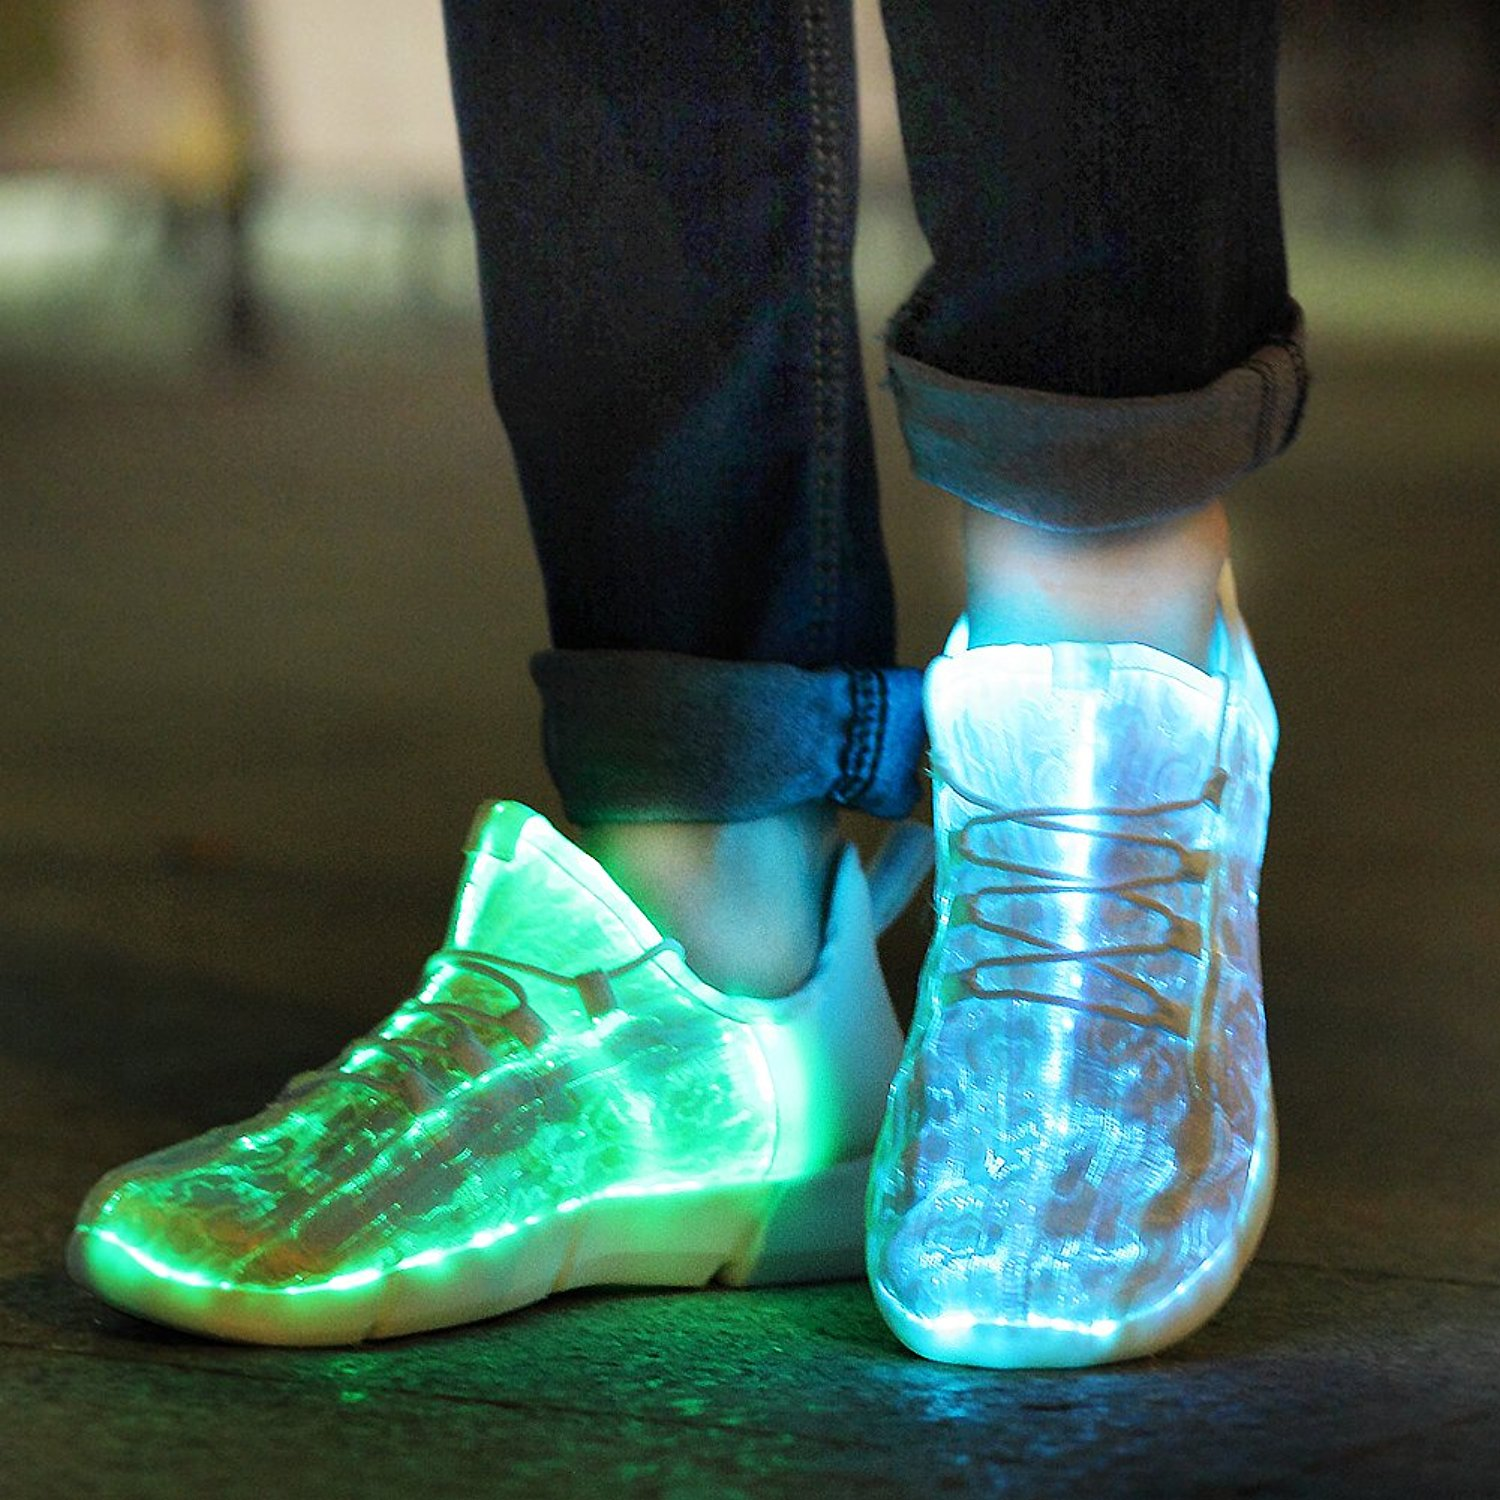 UncleJerry Size 25-46 New Summer Led Fiber Optic Shoes for girls boys men women USB Recharge glowing Sneakers Man light up shoes size 25 46 fiber optic backlight led shoes for girls boys men women new usb charging luminous sneakers glowing light up shoes